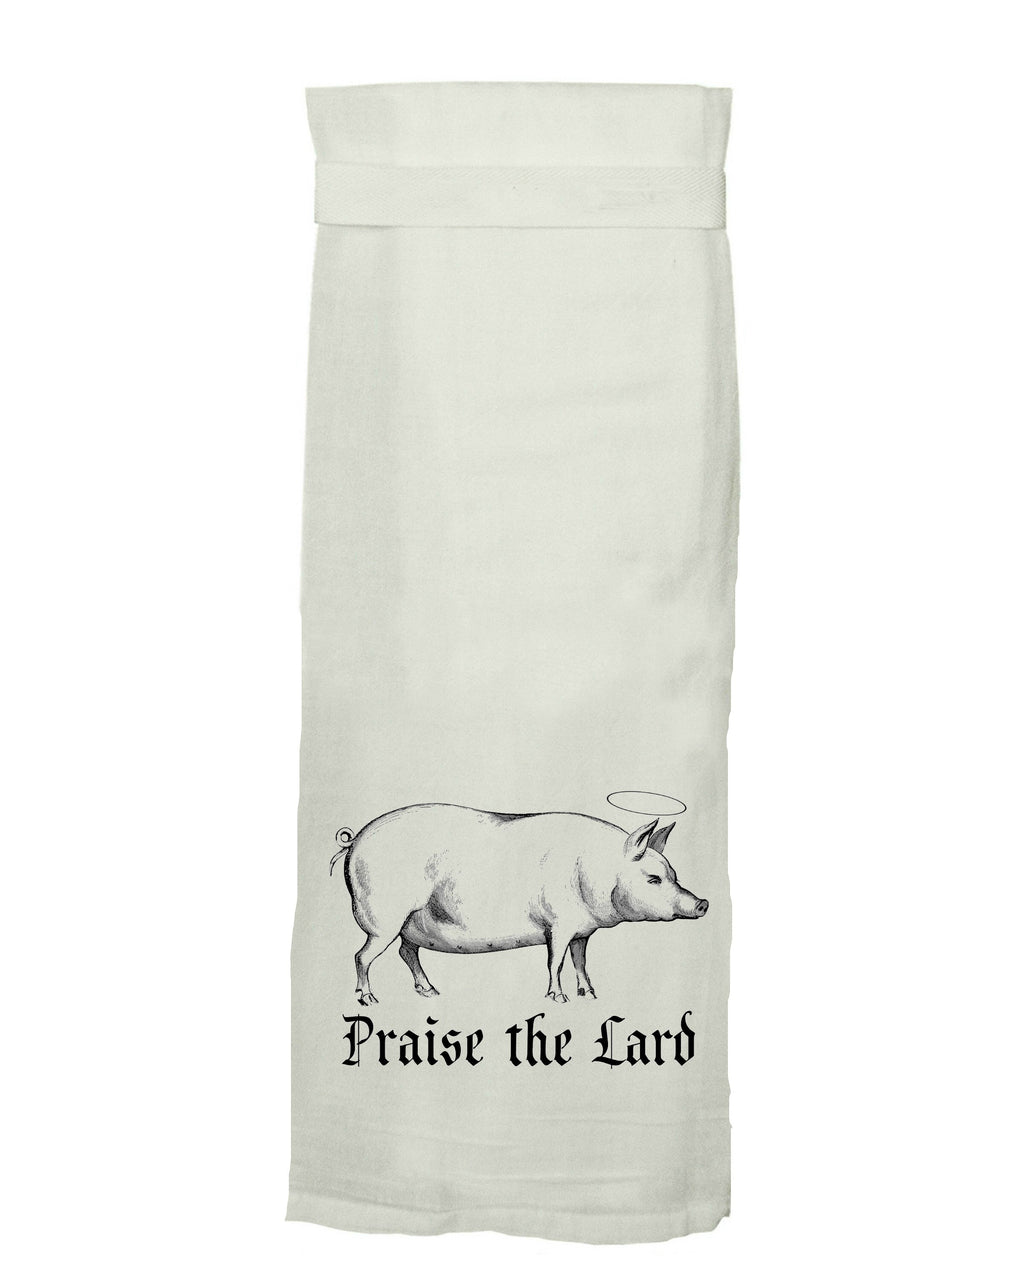 Kitchen, dish towel, Praise the Lard